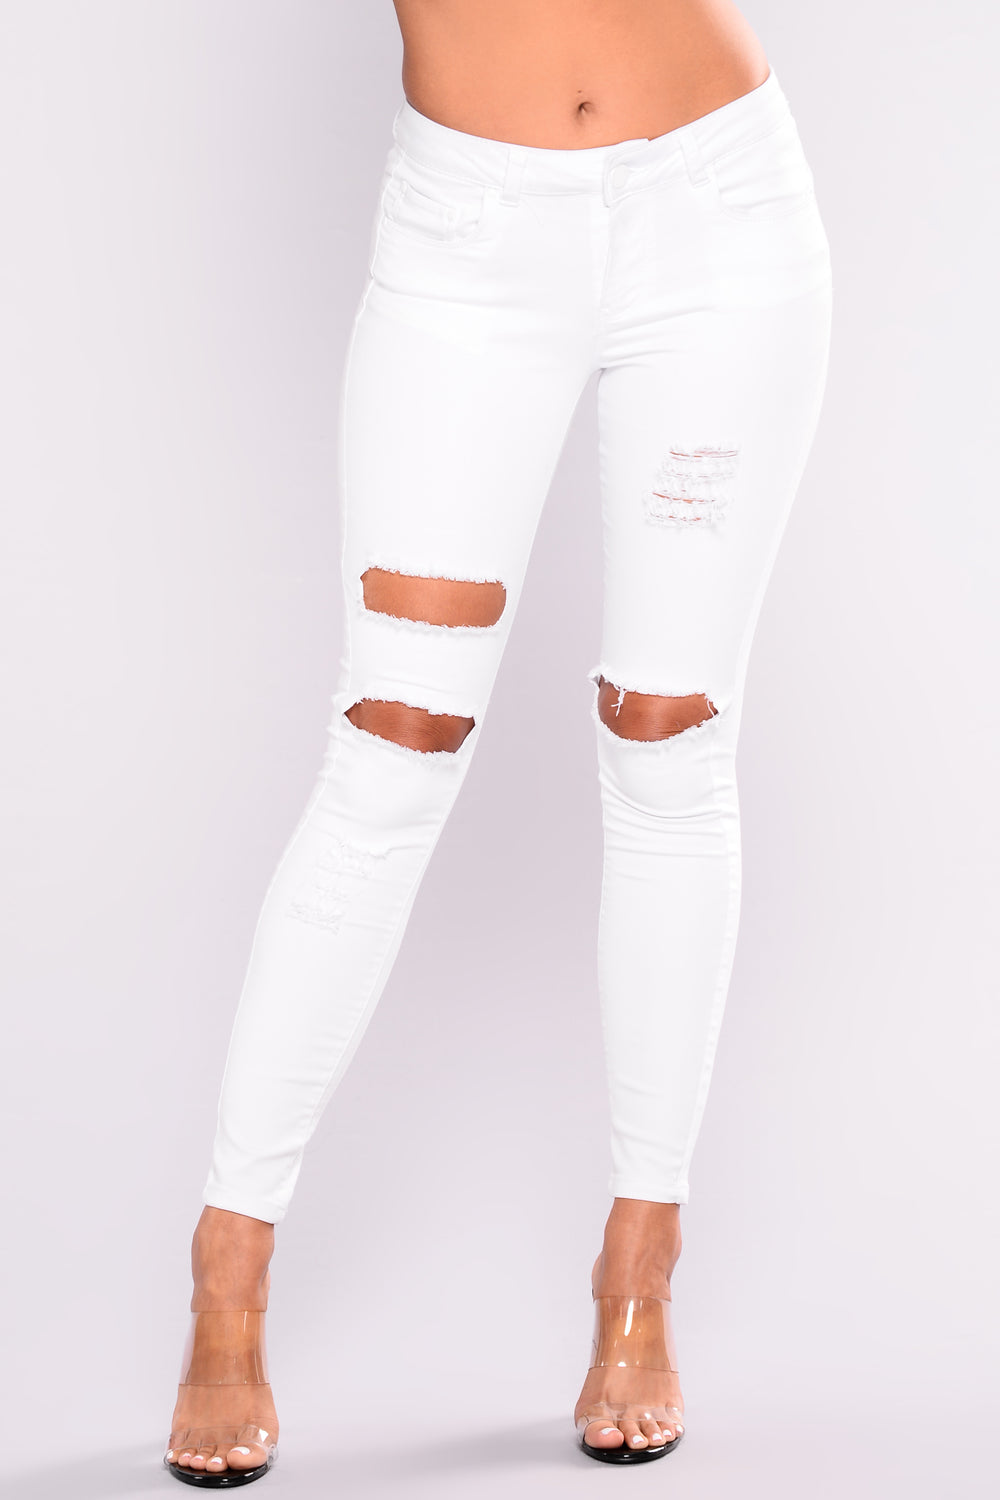 Moody Booty Lifting Jeans - White